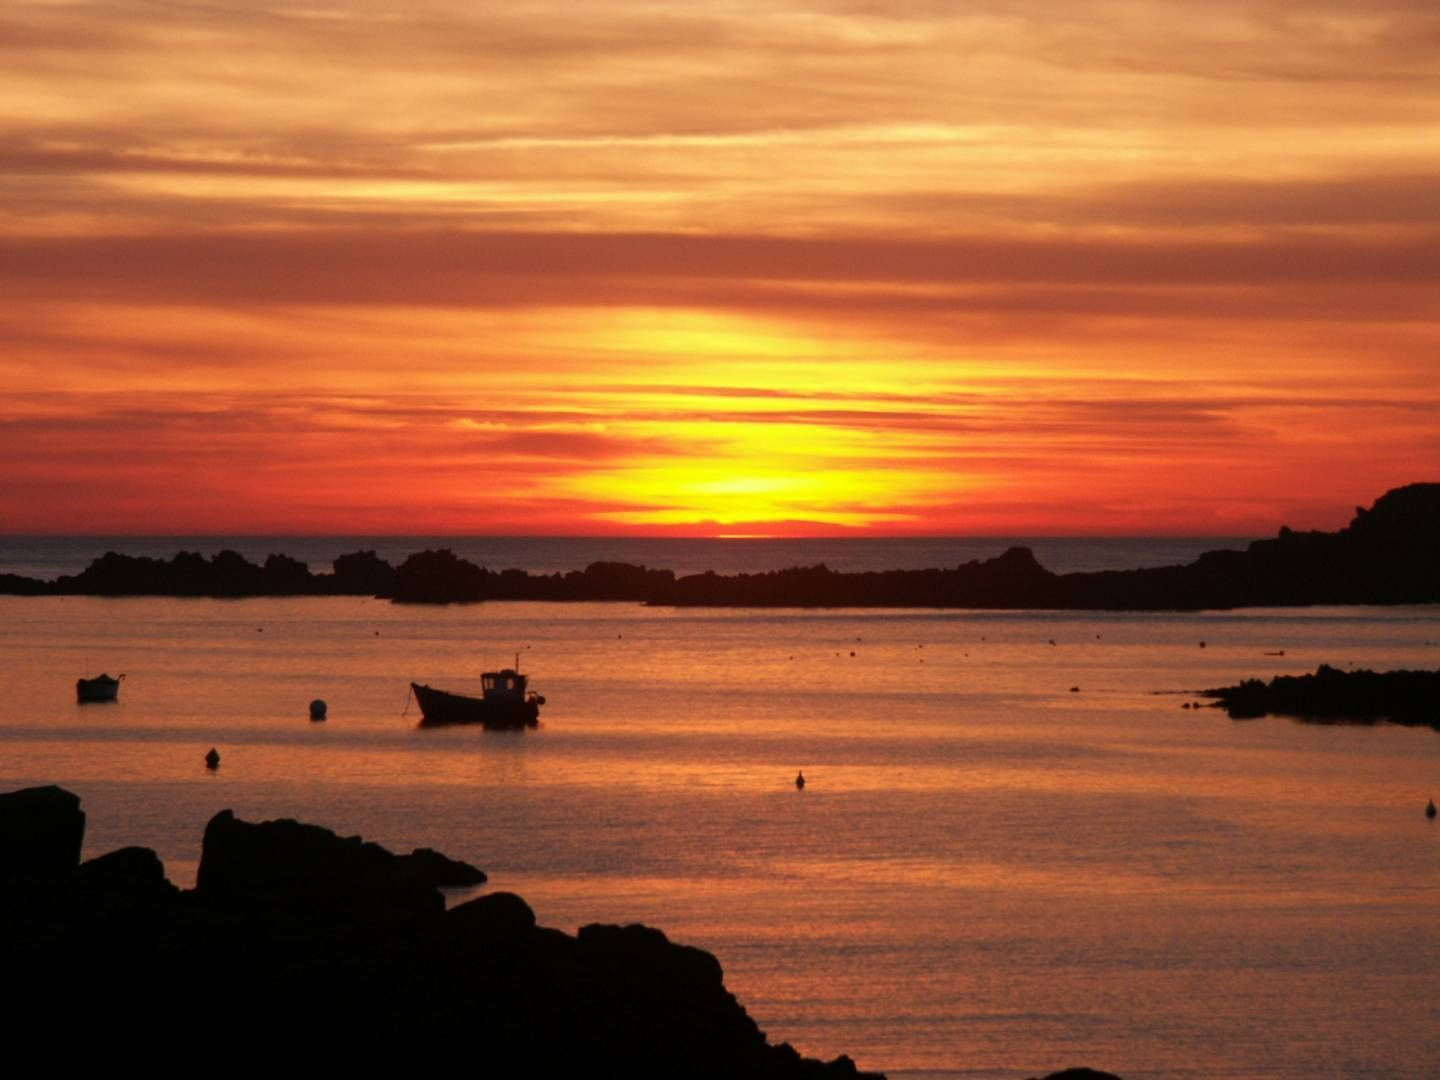 Guernsey Sunset Channel Islands Hd Travel Photos And Wallpapers Guernsey Channel Islands Island Guernsey Island